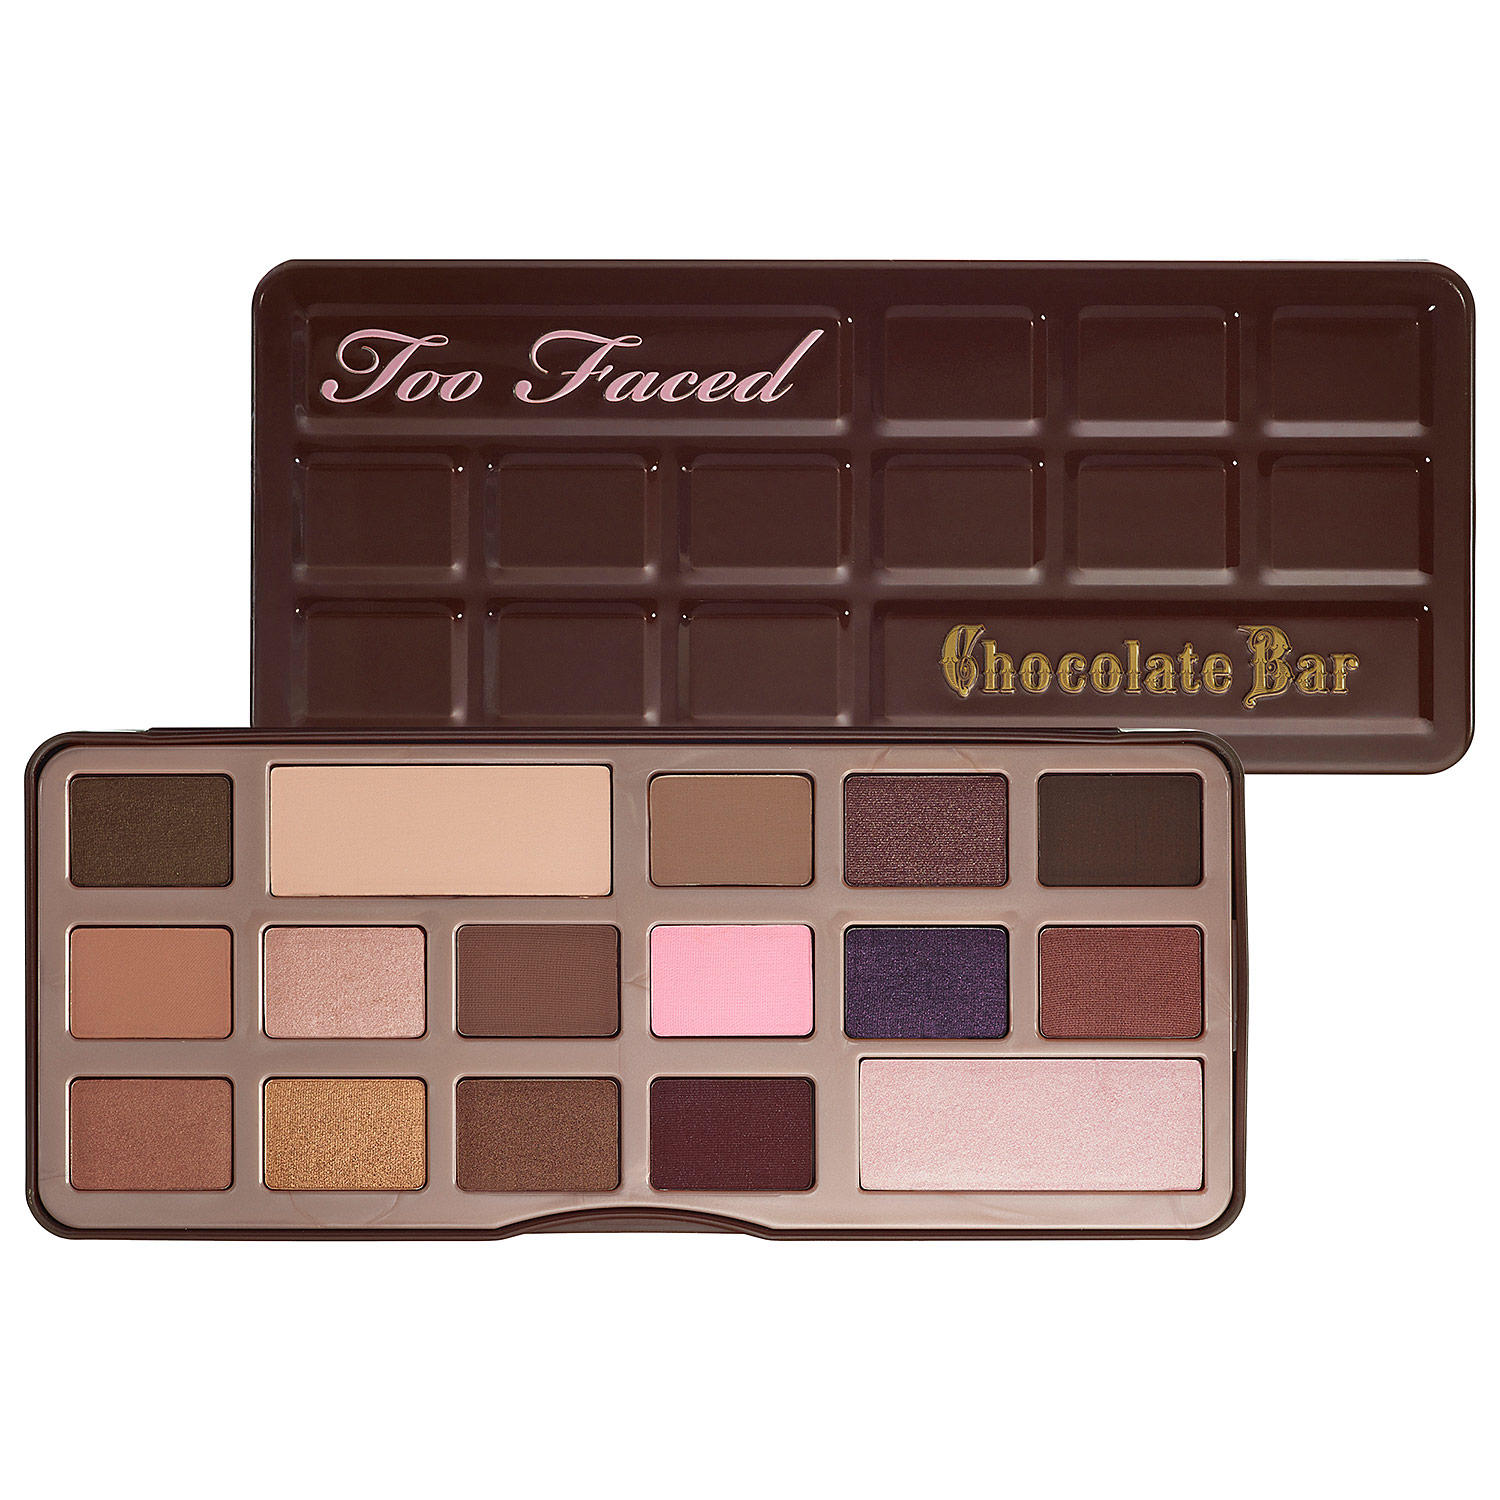 too faced international shipping